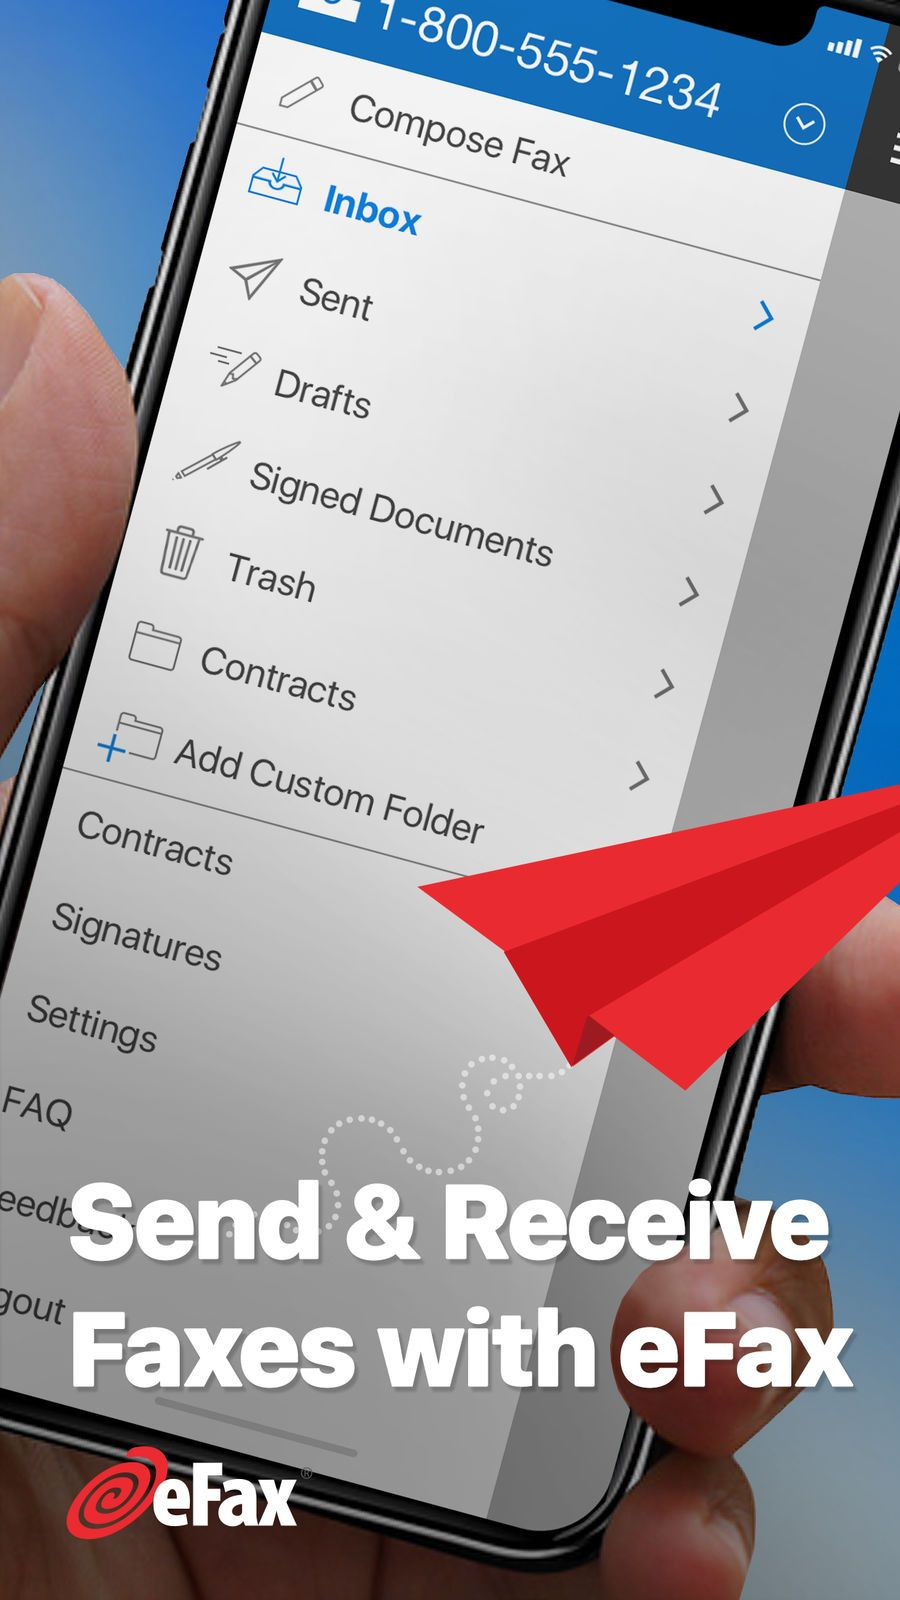 eFax ¨C send fax from iPhone BusinessGlobalios